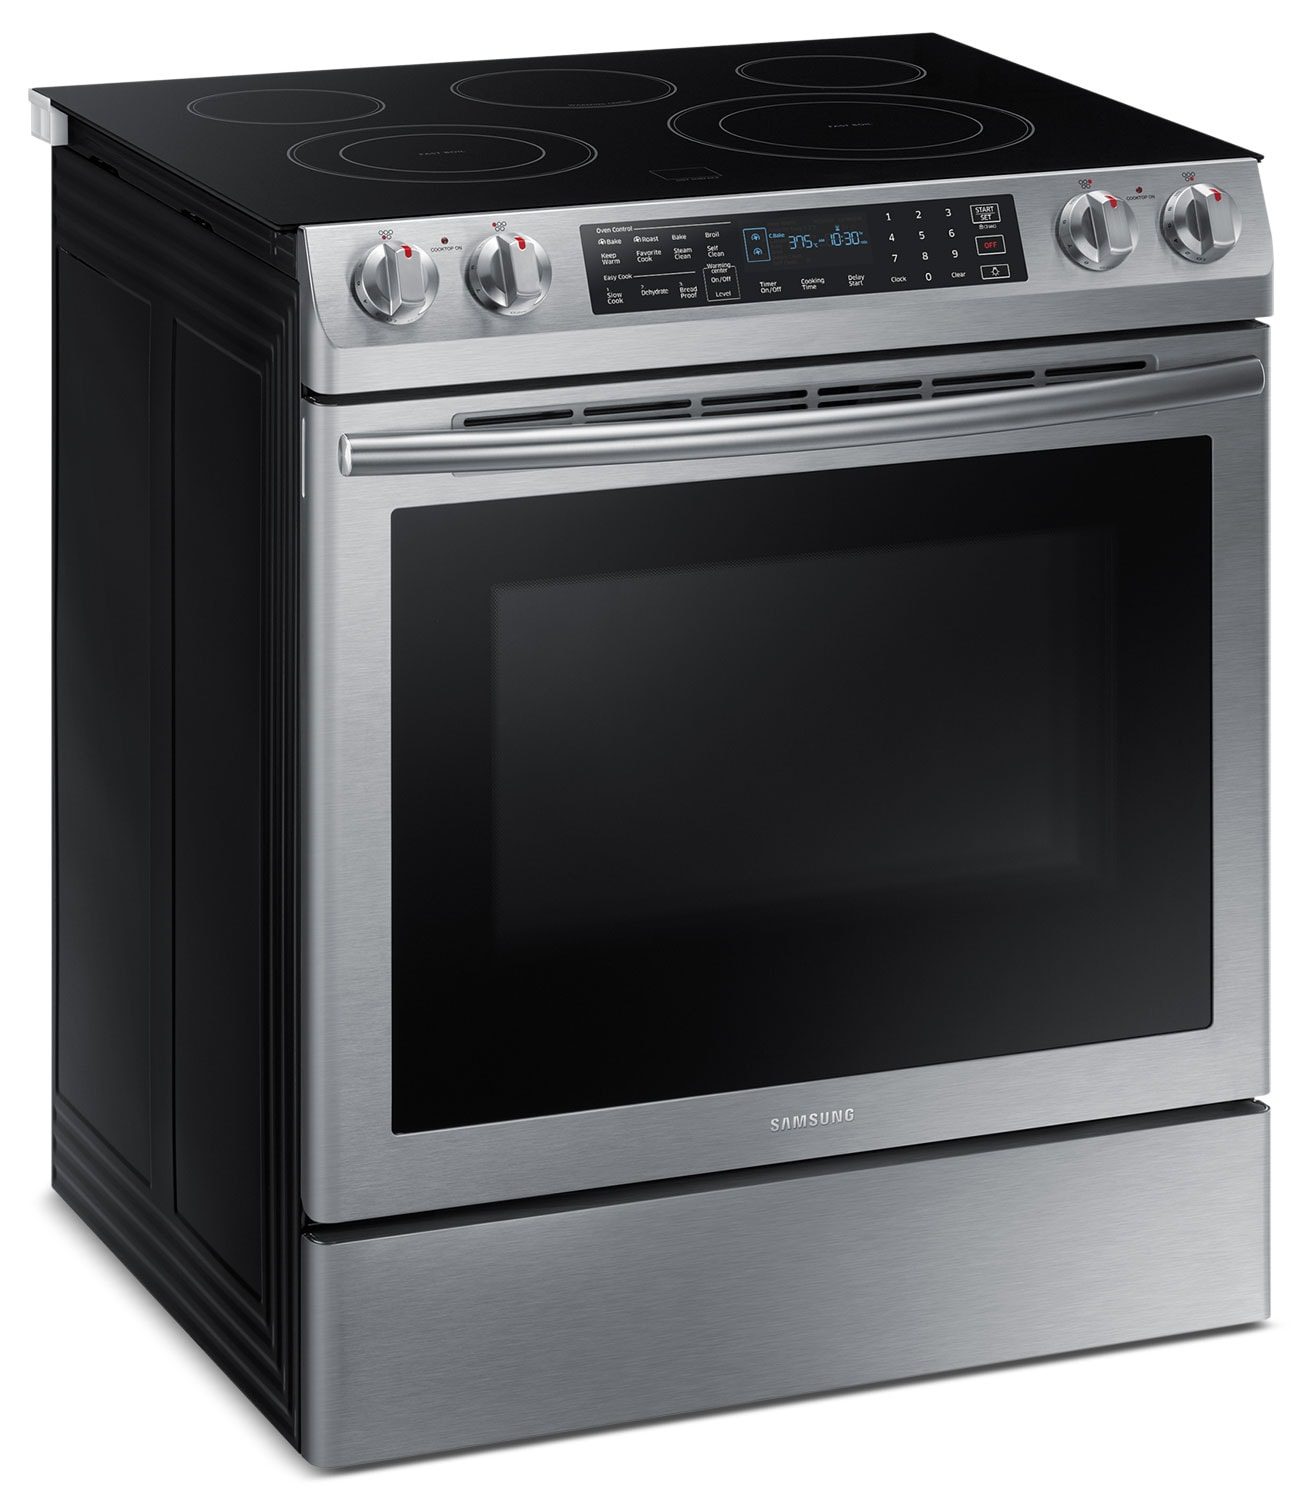 samsung 5 8 cu ft electric slide in dual convection range ne58m9430ss ac the brick. Black Bedroom Furniture Sets. Home Design Ideas